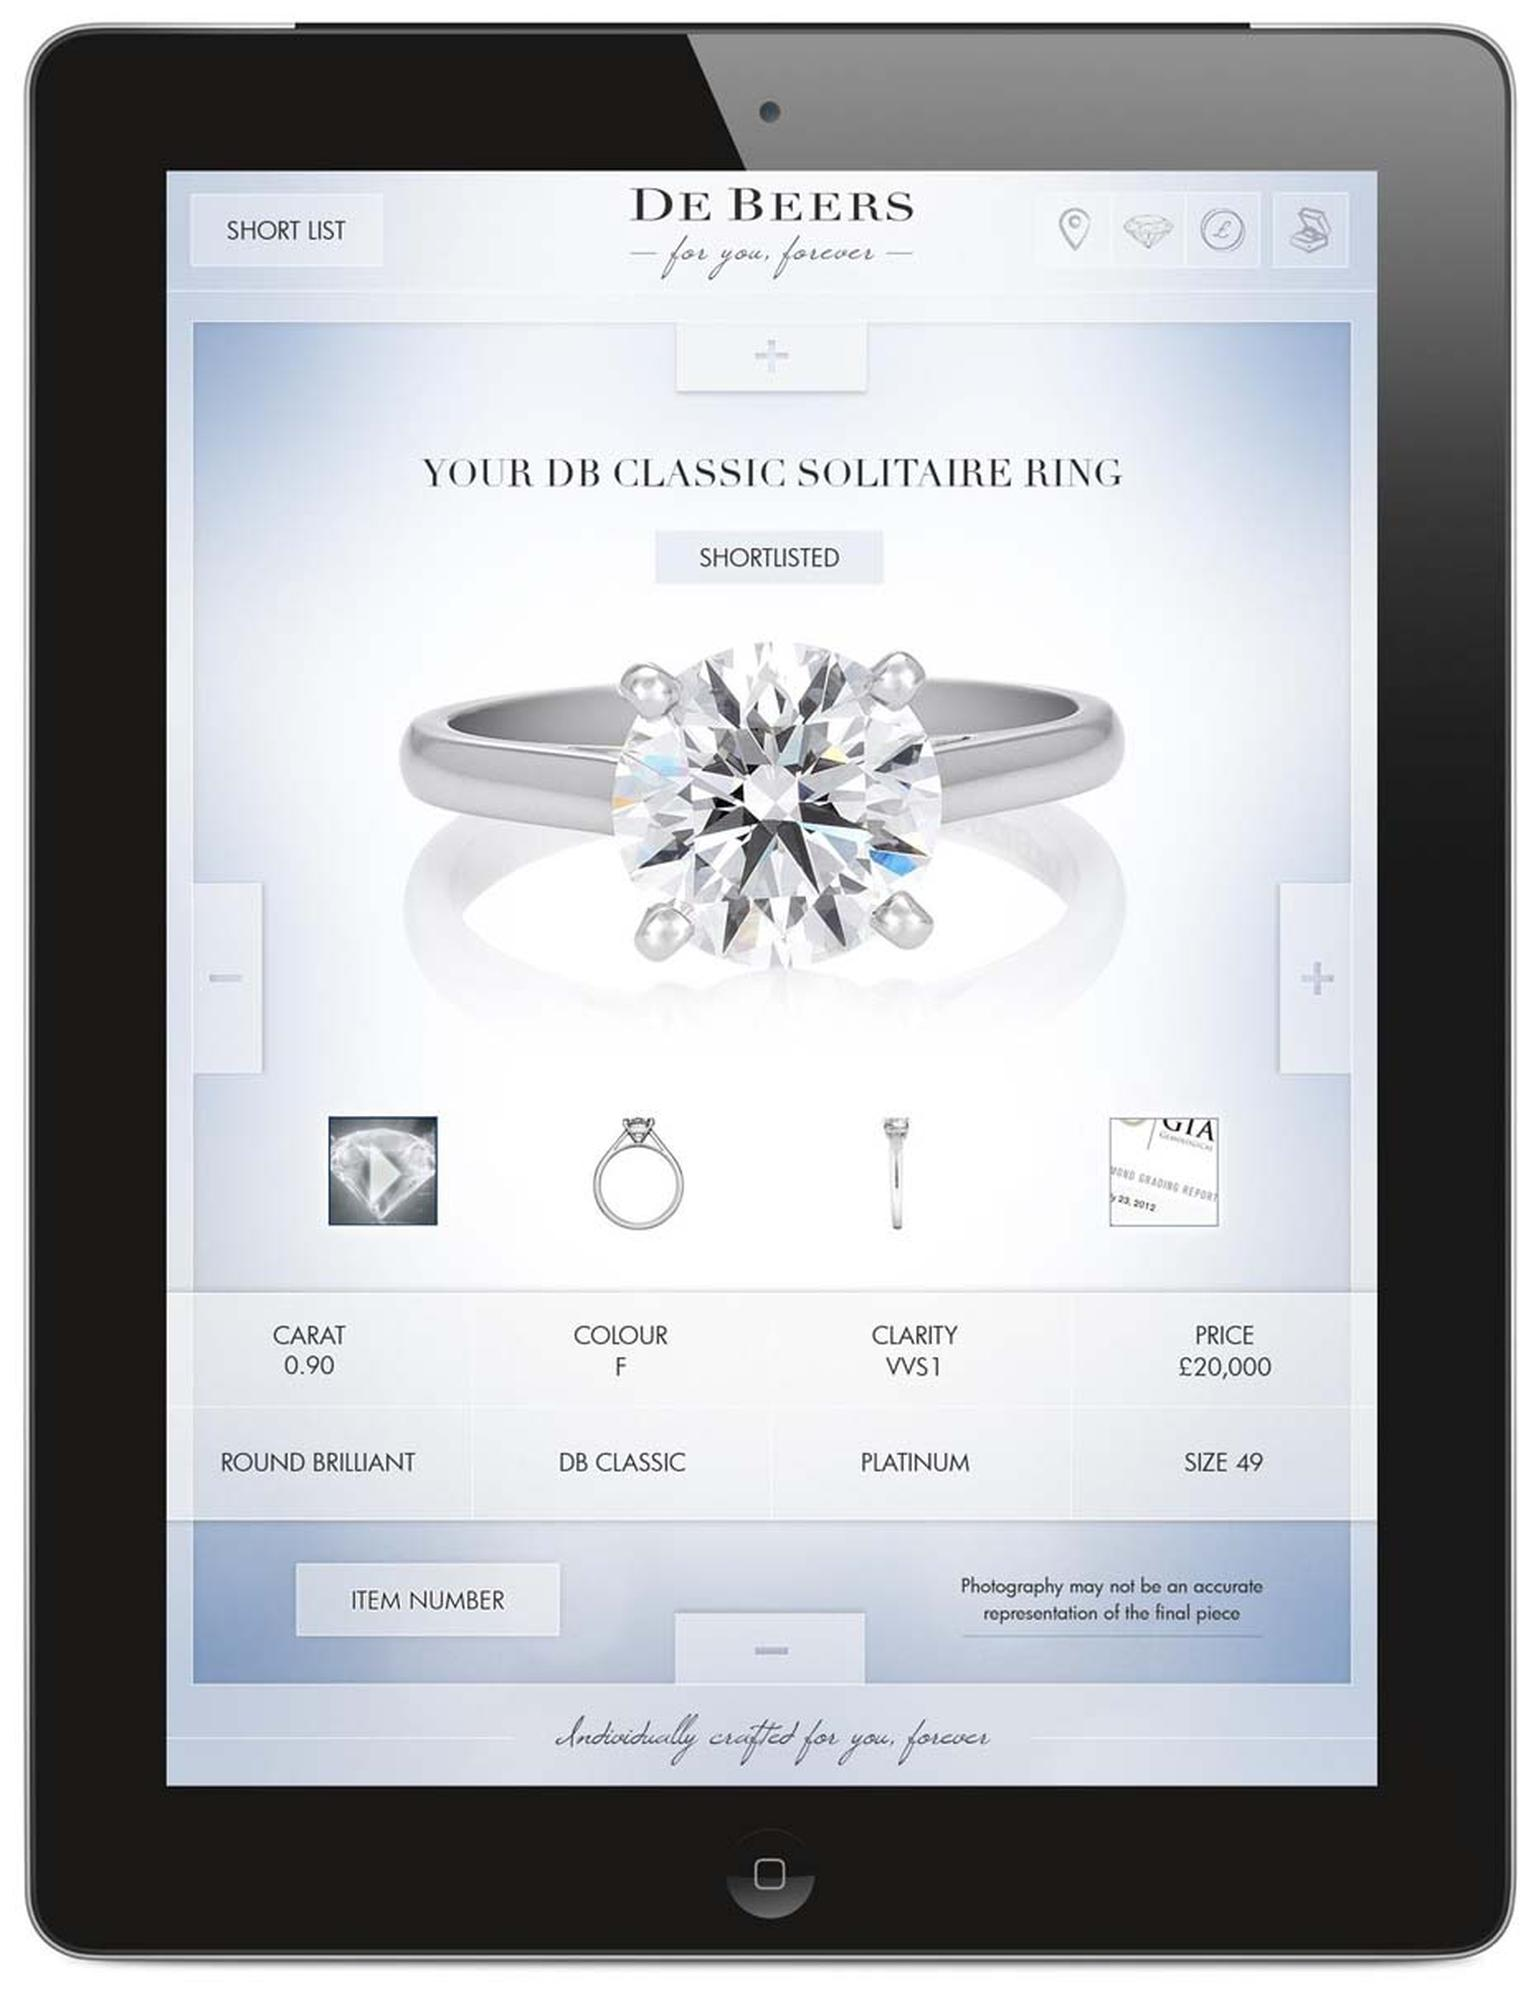 De Beers' in-store bridal app allows customers to view each diamond individually through the De Beers iris, which replicates different light conditions to demonstrate the beauty and sparkle of the gemstone.